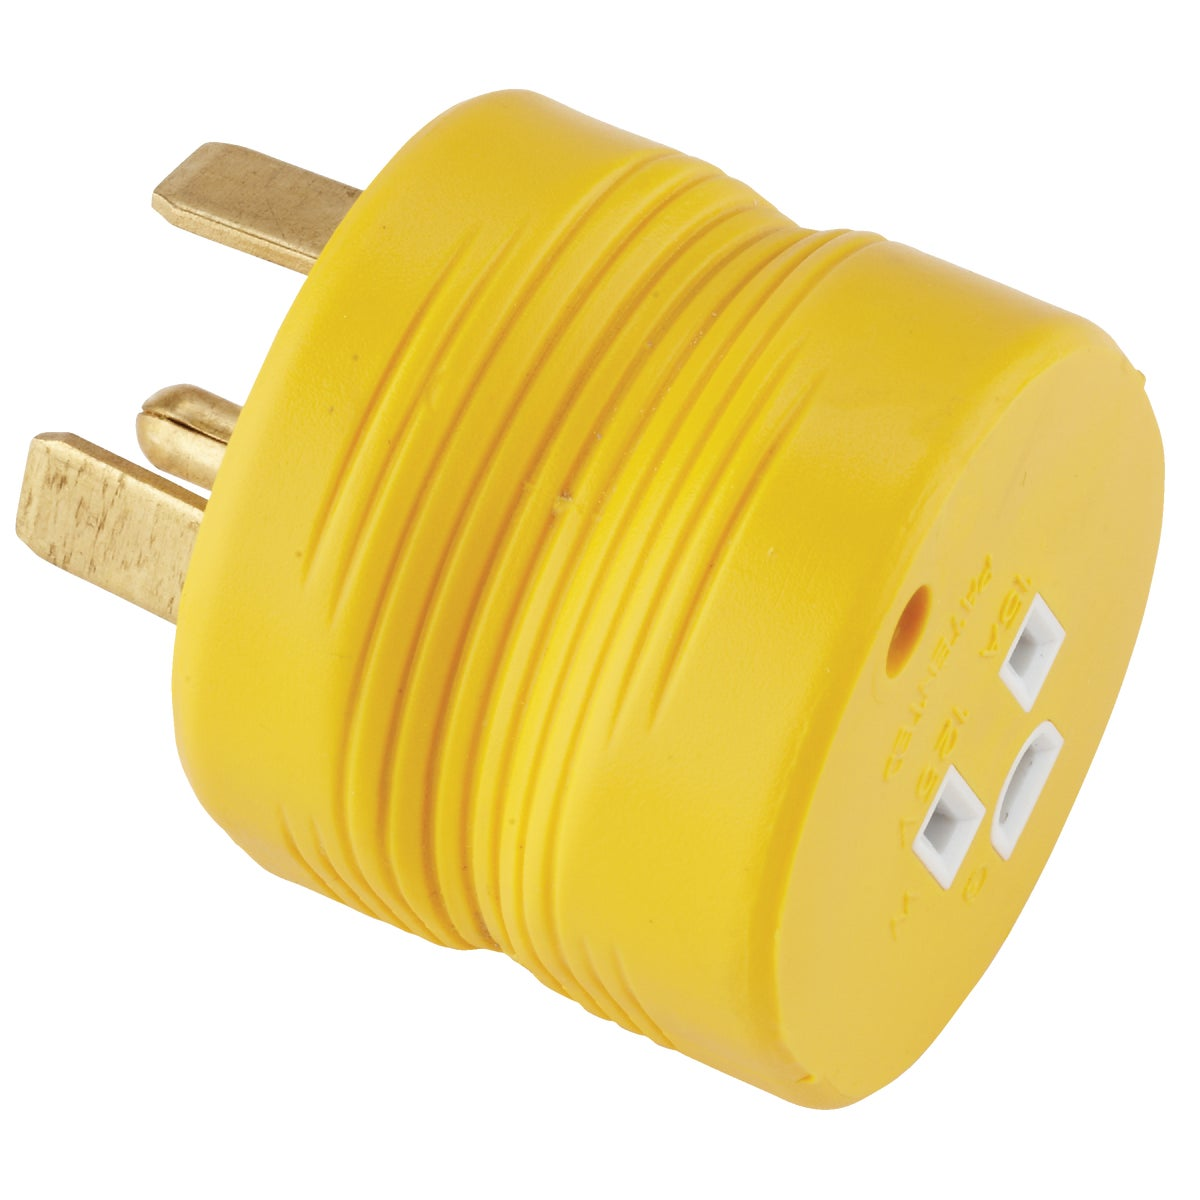 30M-15F ELECTRIC ADAPTER - 55233 by Camco Mfg.